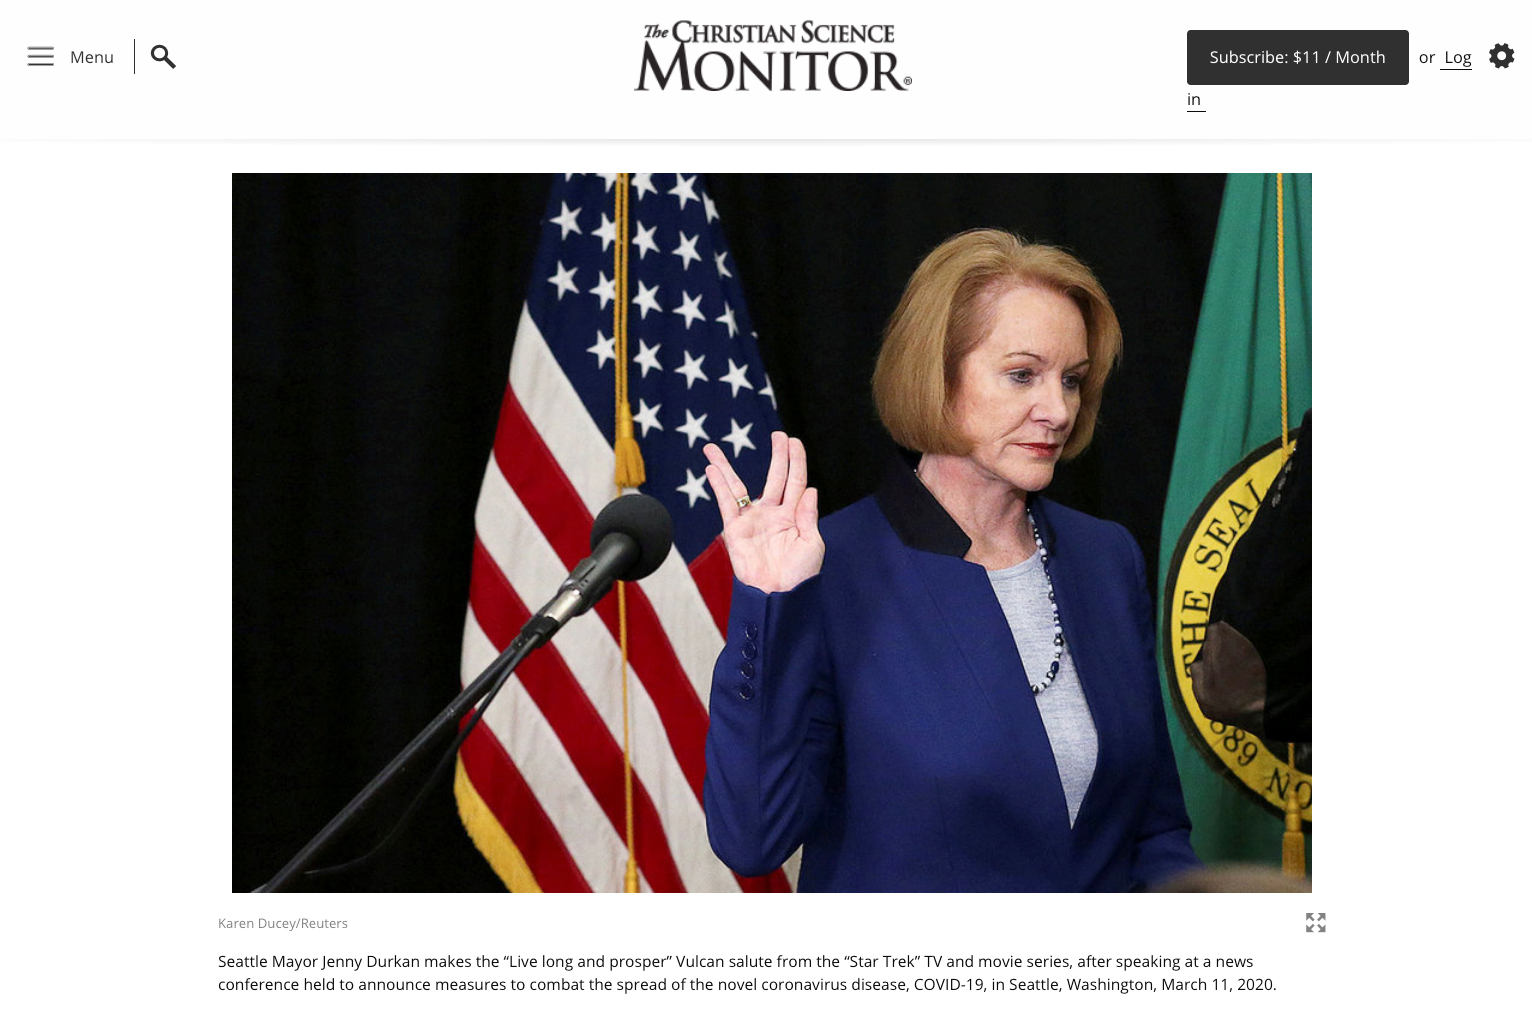 {quote}'I love this city to my bones': How Mayor Jenny Durkan leads Seattle{quote}, Photo for Reuters published in the Christian Science Monitor, March 20, 2020